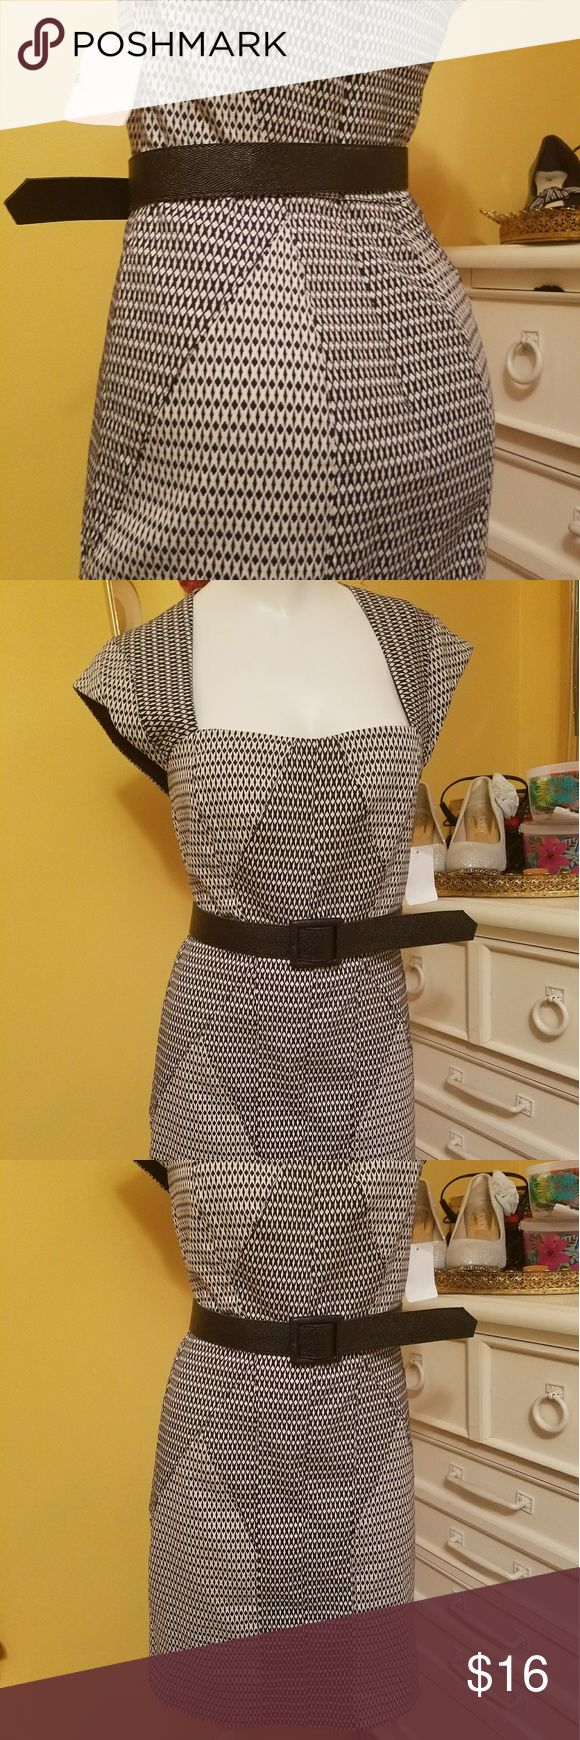 (New)Nicole Miller Dress Cute! Seems like it's form fitting. Fits an 8 best although Mannequin is a size 6 and with belt she is working it also! Seems like it was made to enhance certain areas😉 through the pattern cut. BUNDLE AND SAVE and feel free to offer. Looks like its a darker navy blue color( tag says Navy). Not sure if it's Black, maybe I am color blind. Belt not included. Does have lining! Dresses